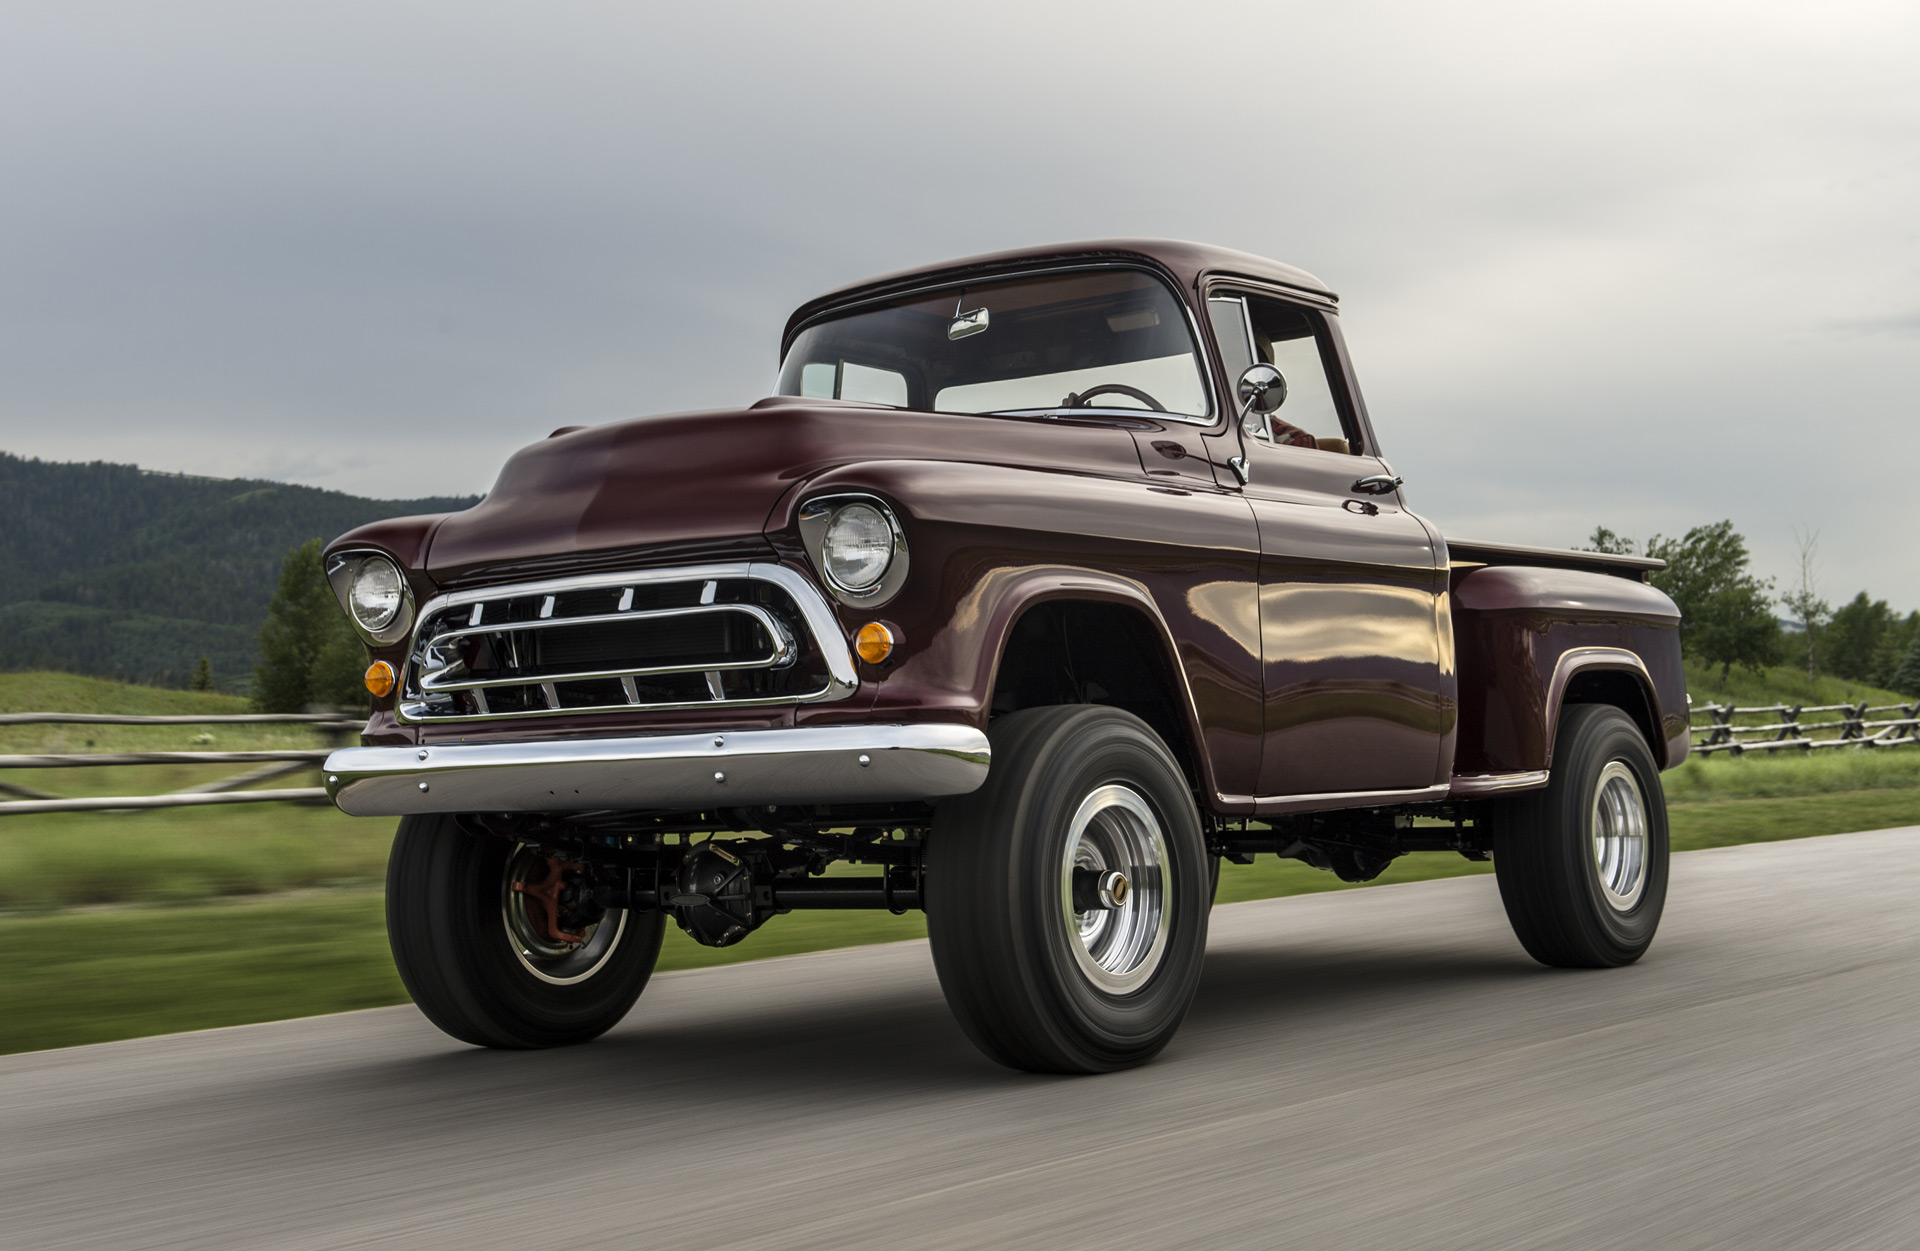 Classic Trucks returns with 1950s Chevy NAPCO 4x4